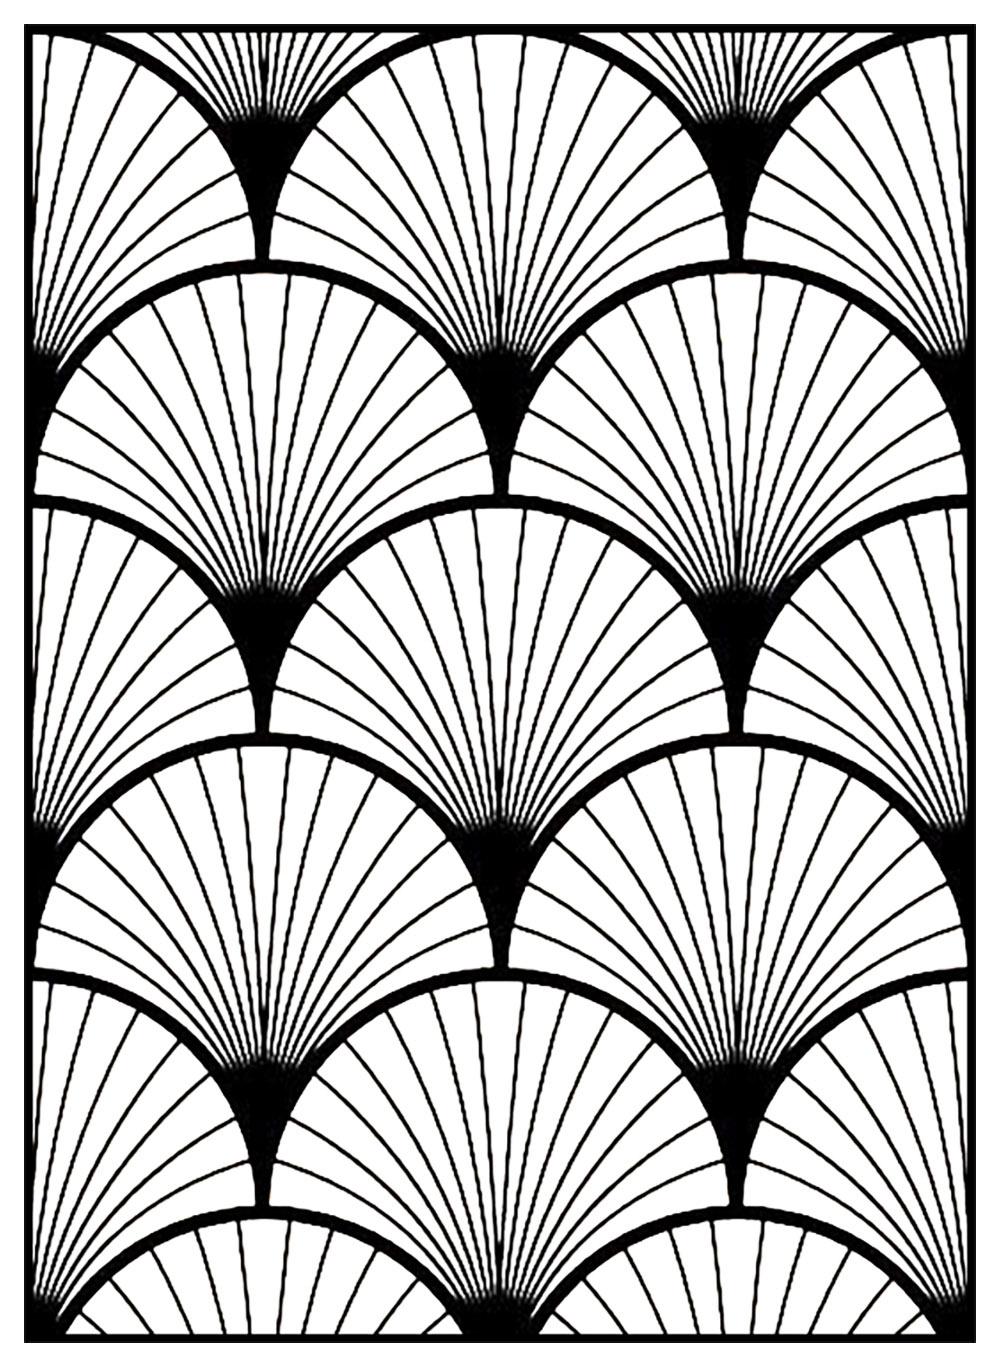 Geometric patterns art deco 3 - Art Deco Adult Coloring Pages